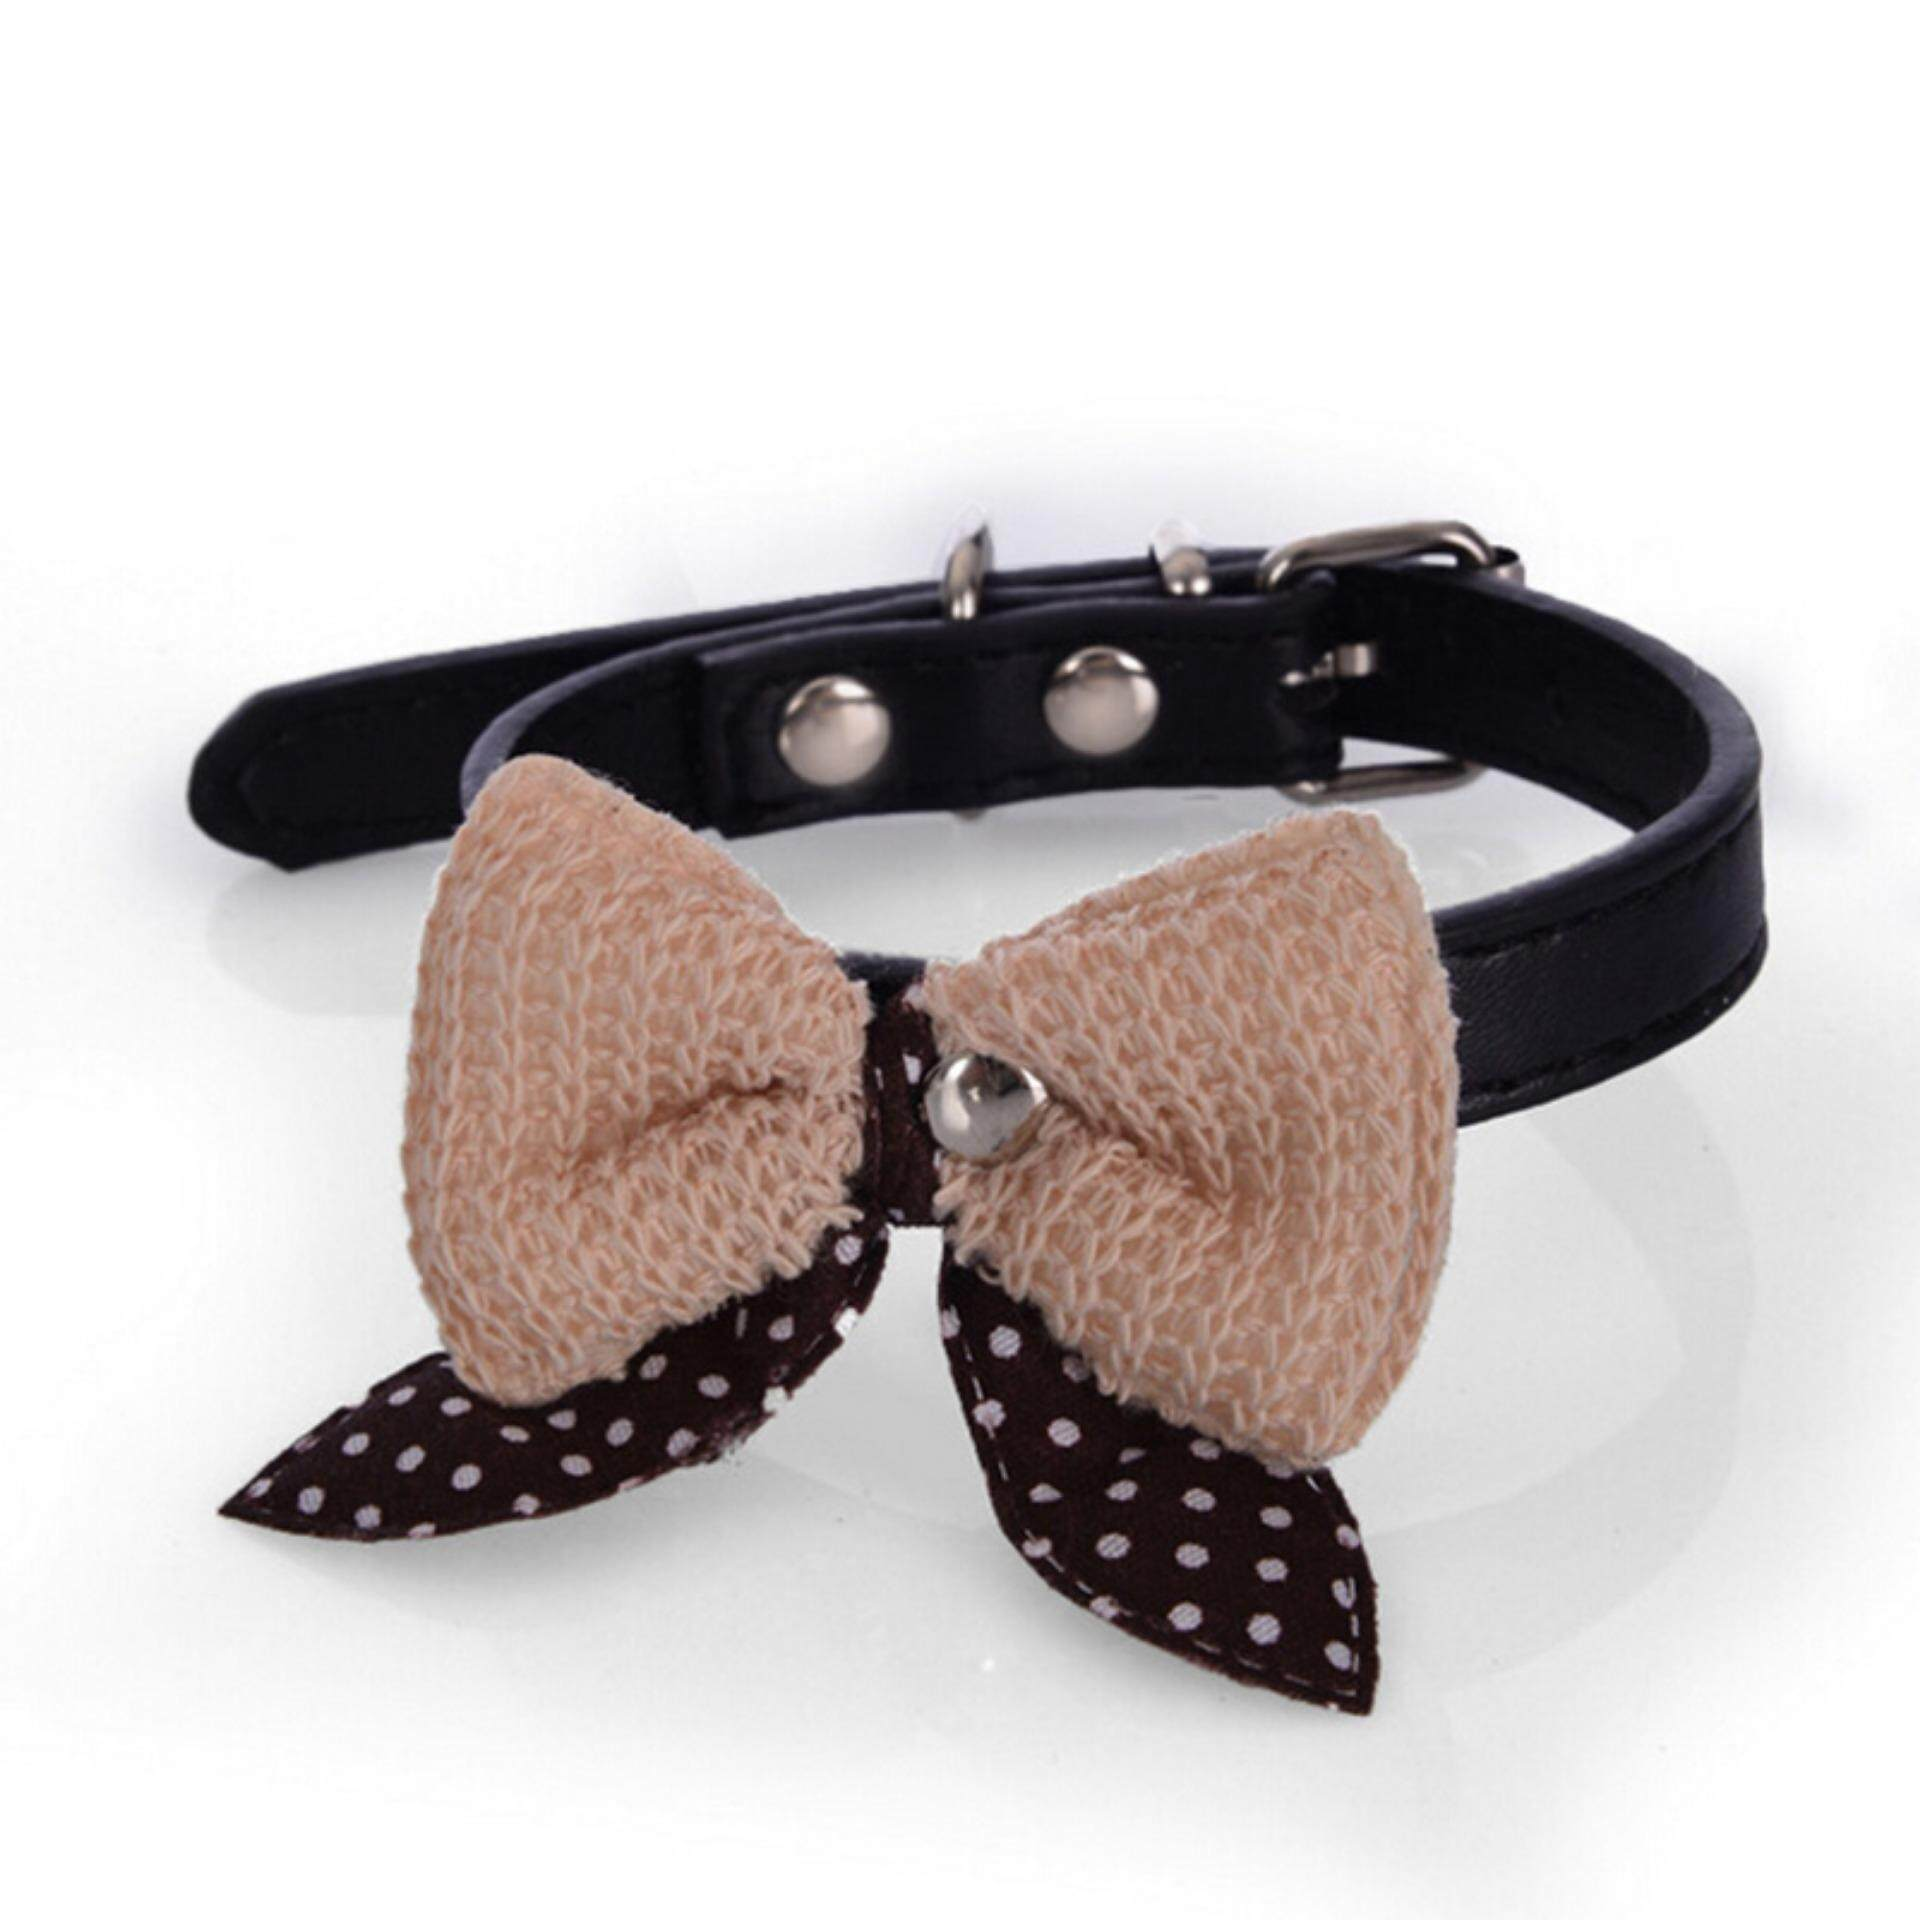 Bowknot Adjustable PU Leather Dog Puppy Pet Cat Collars Necklace Neck Lace Black Size:S